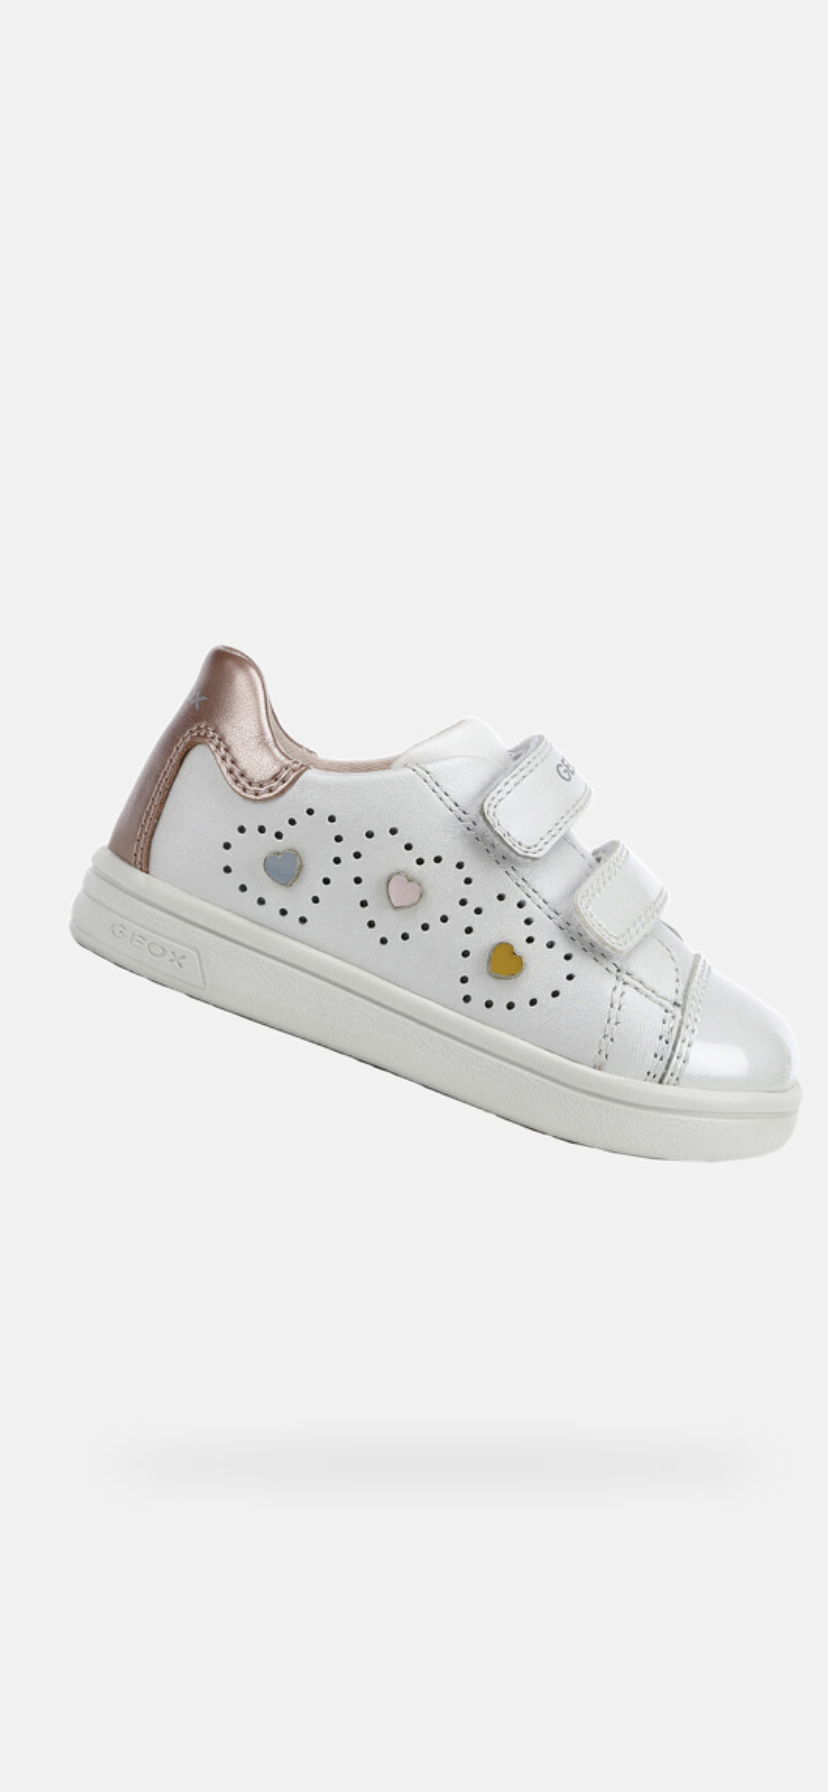 Geox DJ Rock Baby Girls Shoes